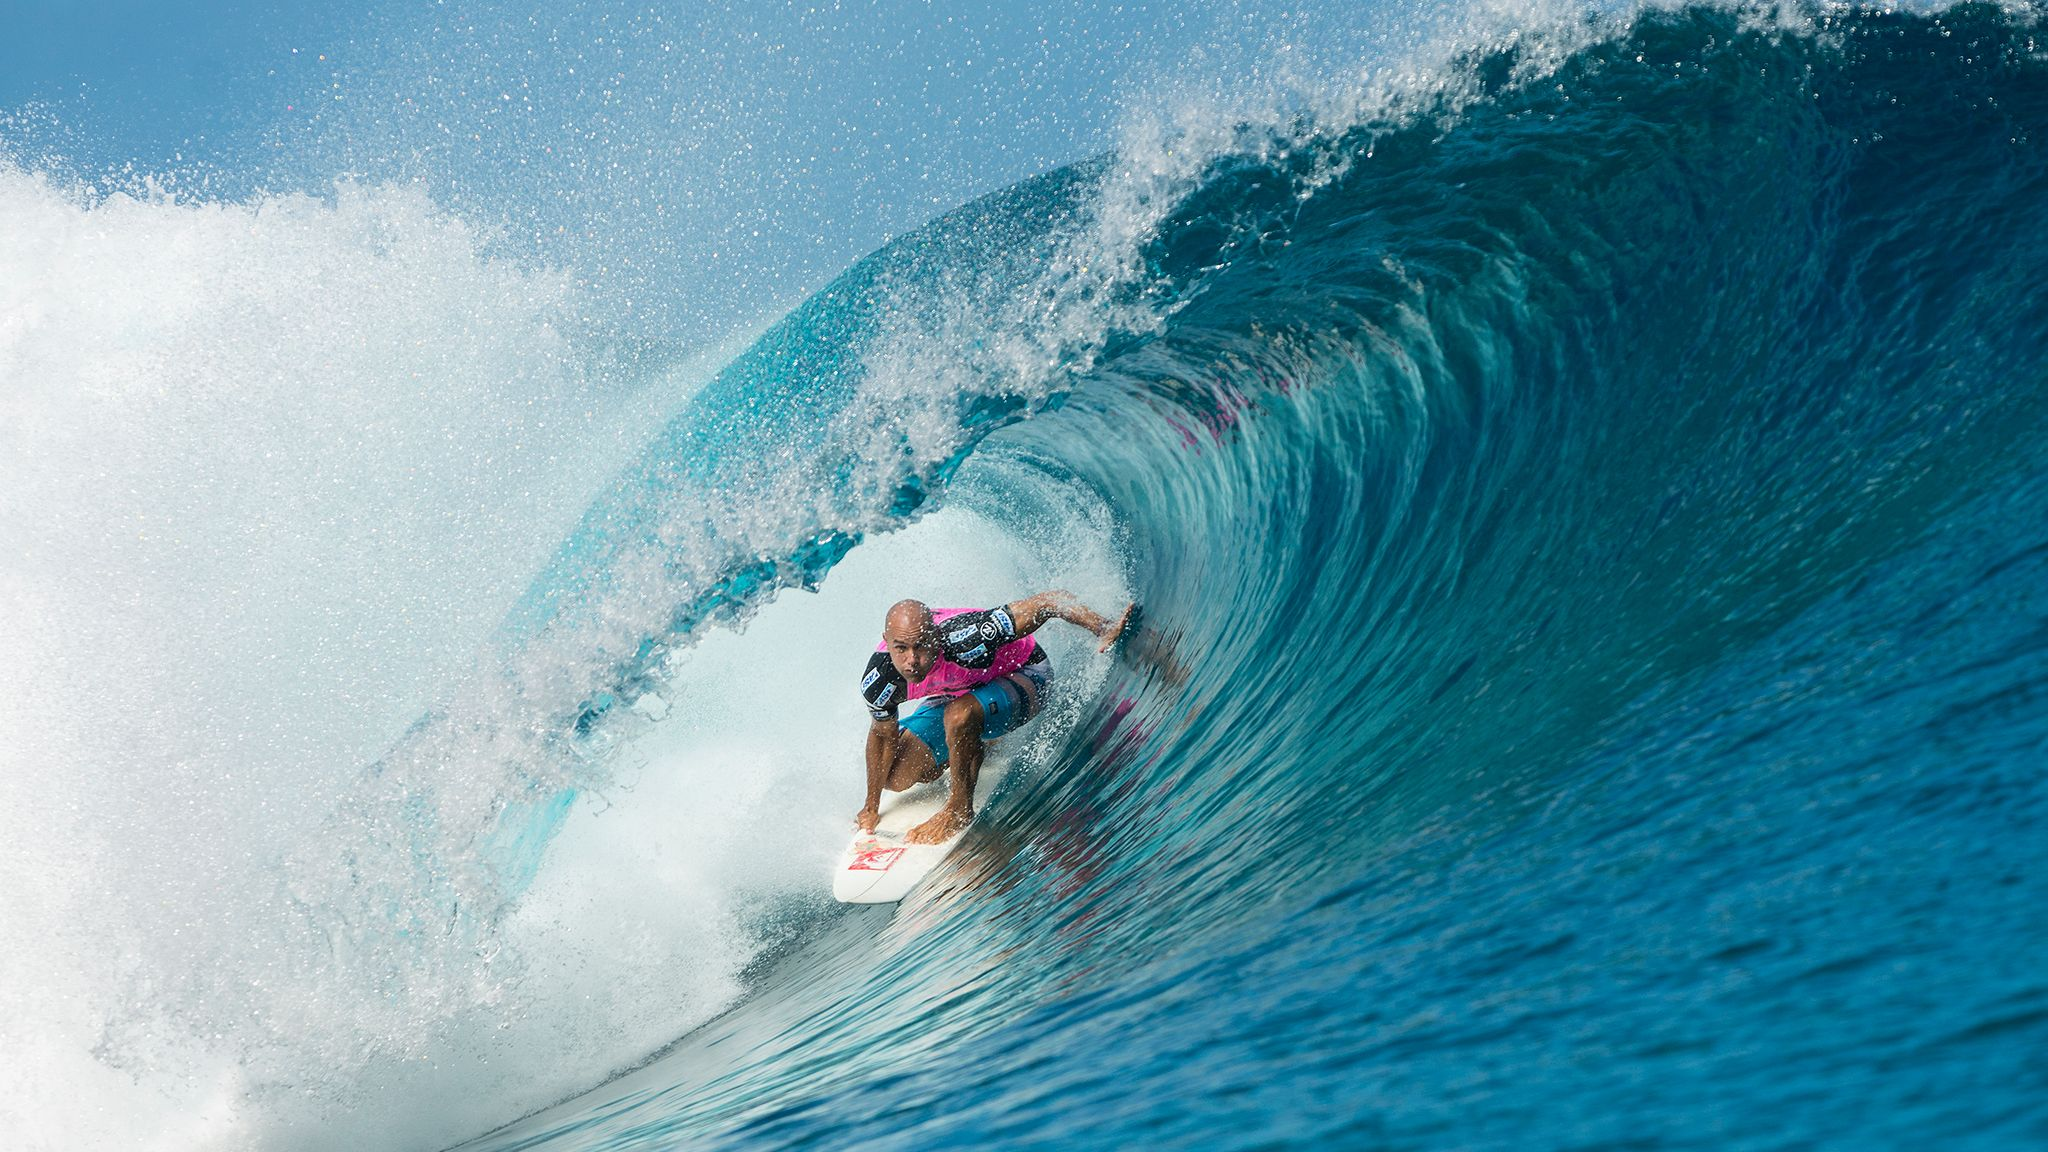 Pro Surfing Wallpapers   Top Pro Surfing Backgrounds 2048x1152